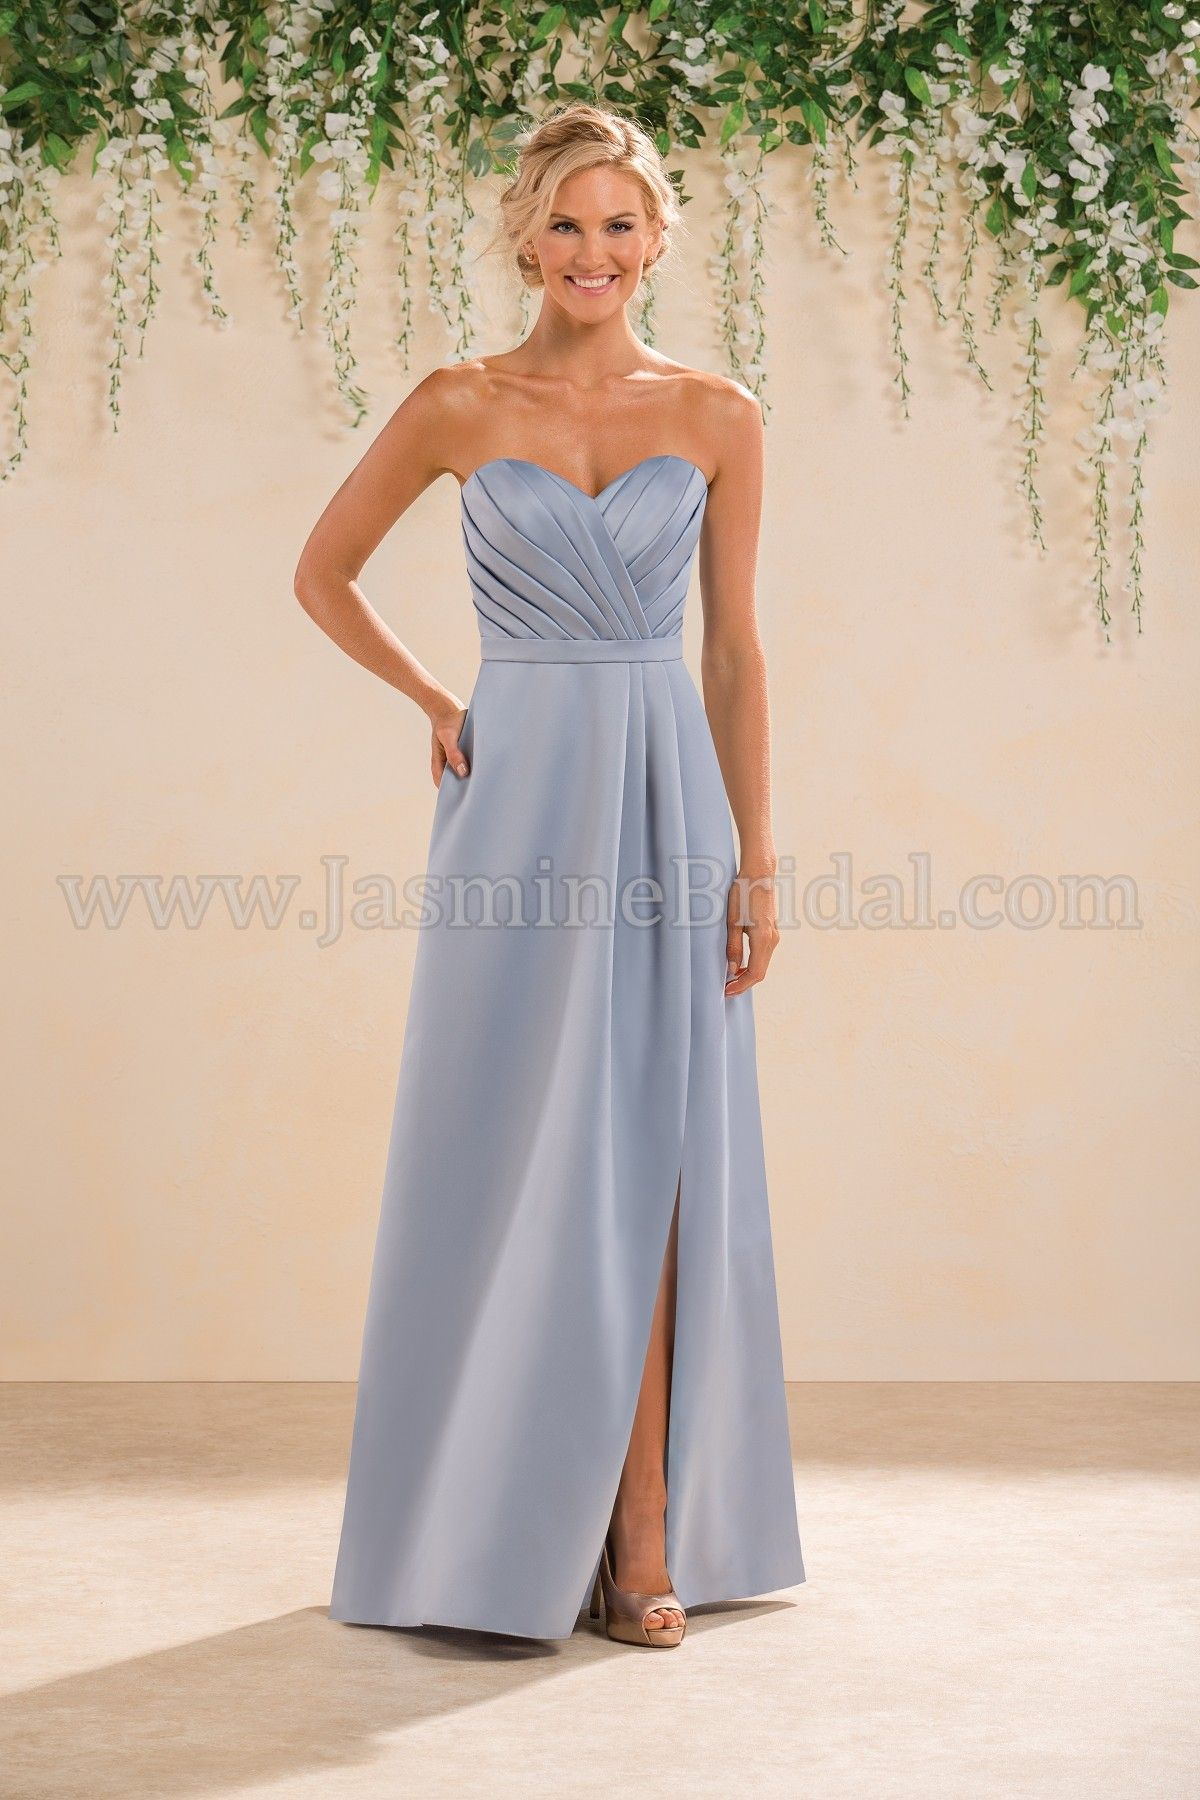 Jasmine bridal bridesmaid dress b2 style b183019 in cornflower jasmine bridal bridesmaid dress b2 style b183019 in cornflower sky blue ombrellifo Choice Image